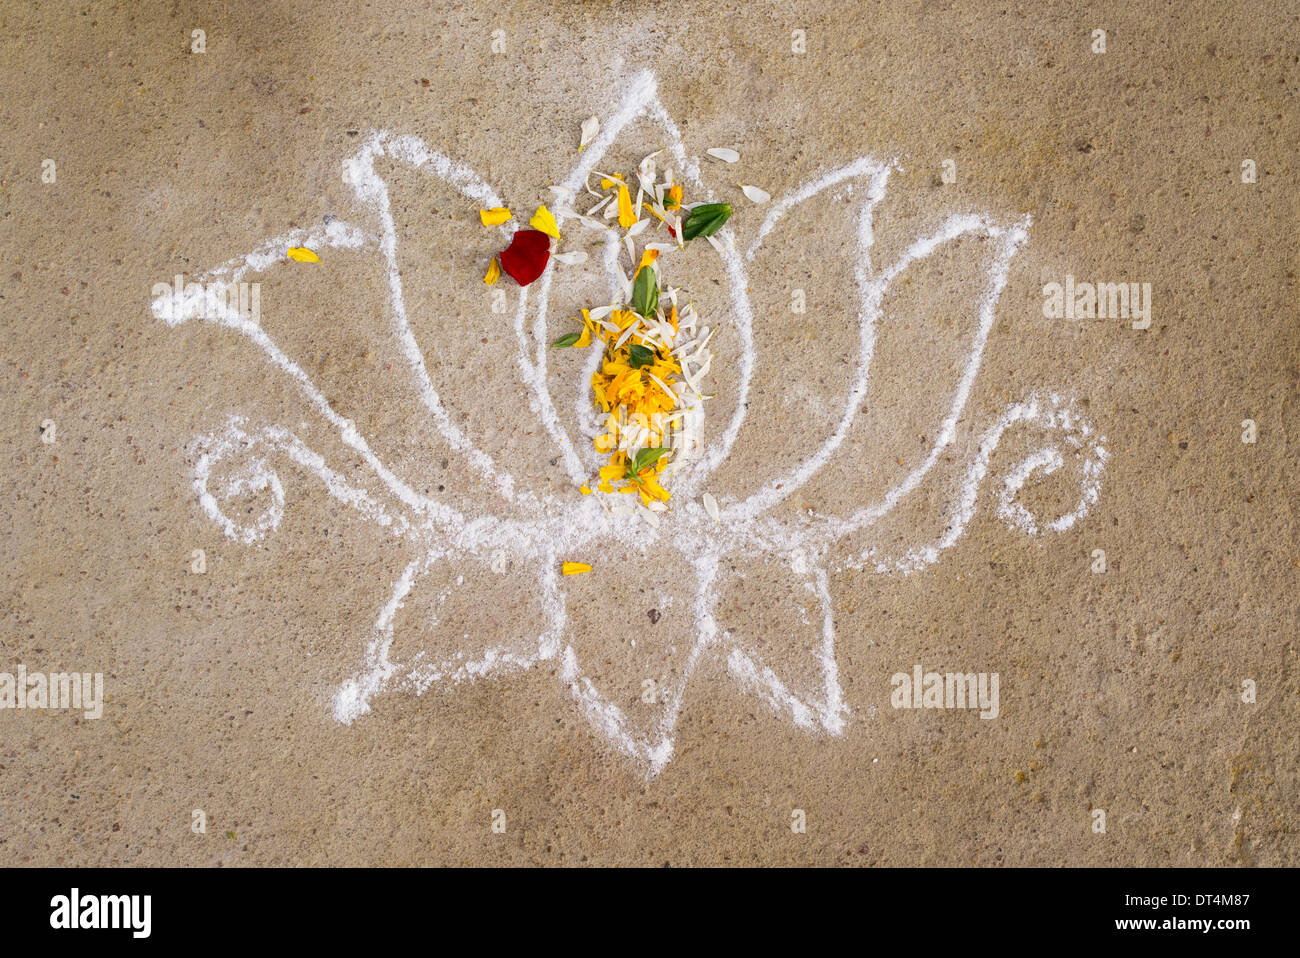 Simple Lotus Flower Rangoli Festival Design With Flower Petals In An